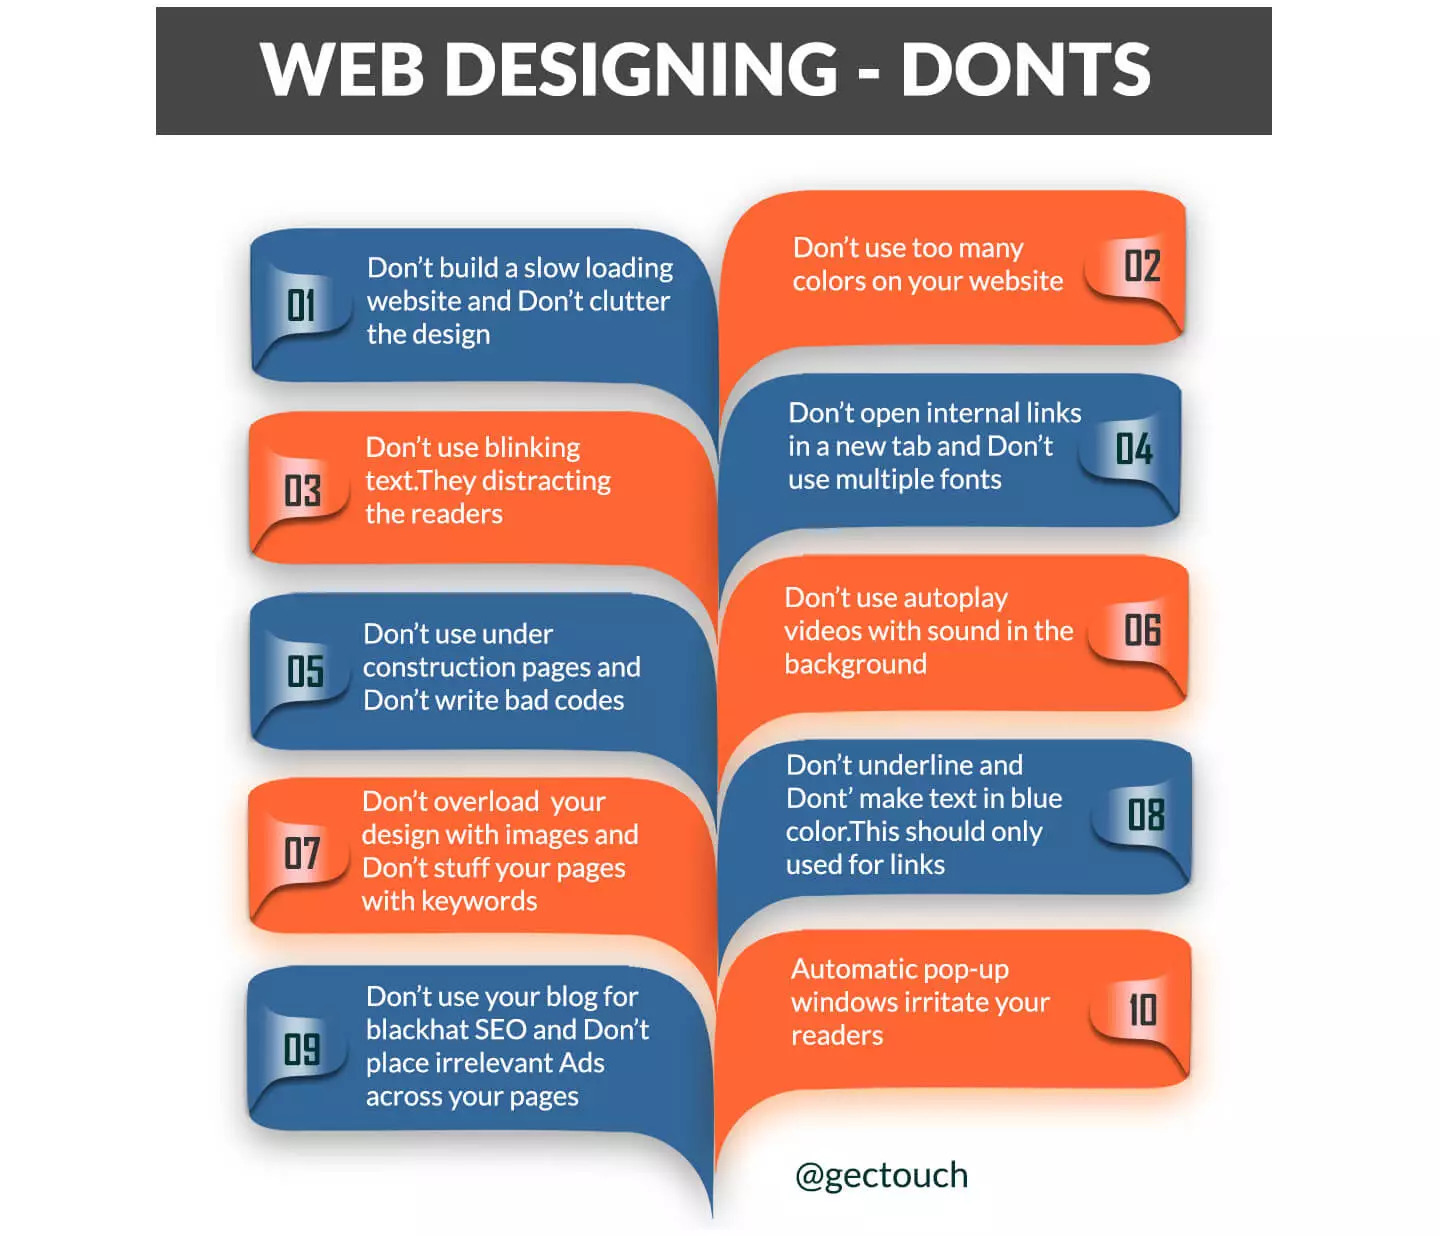 Web designing don'ts infographic